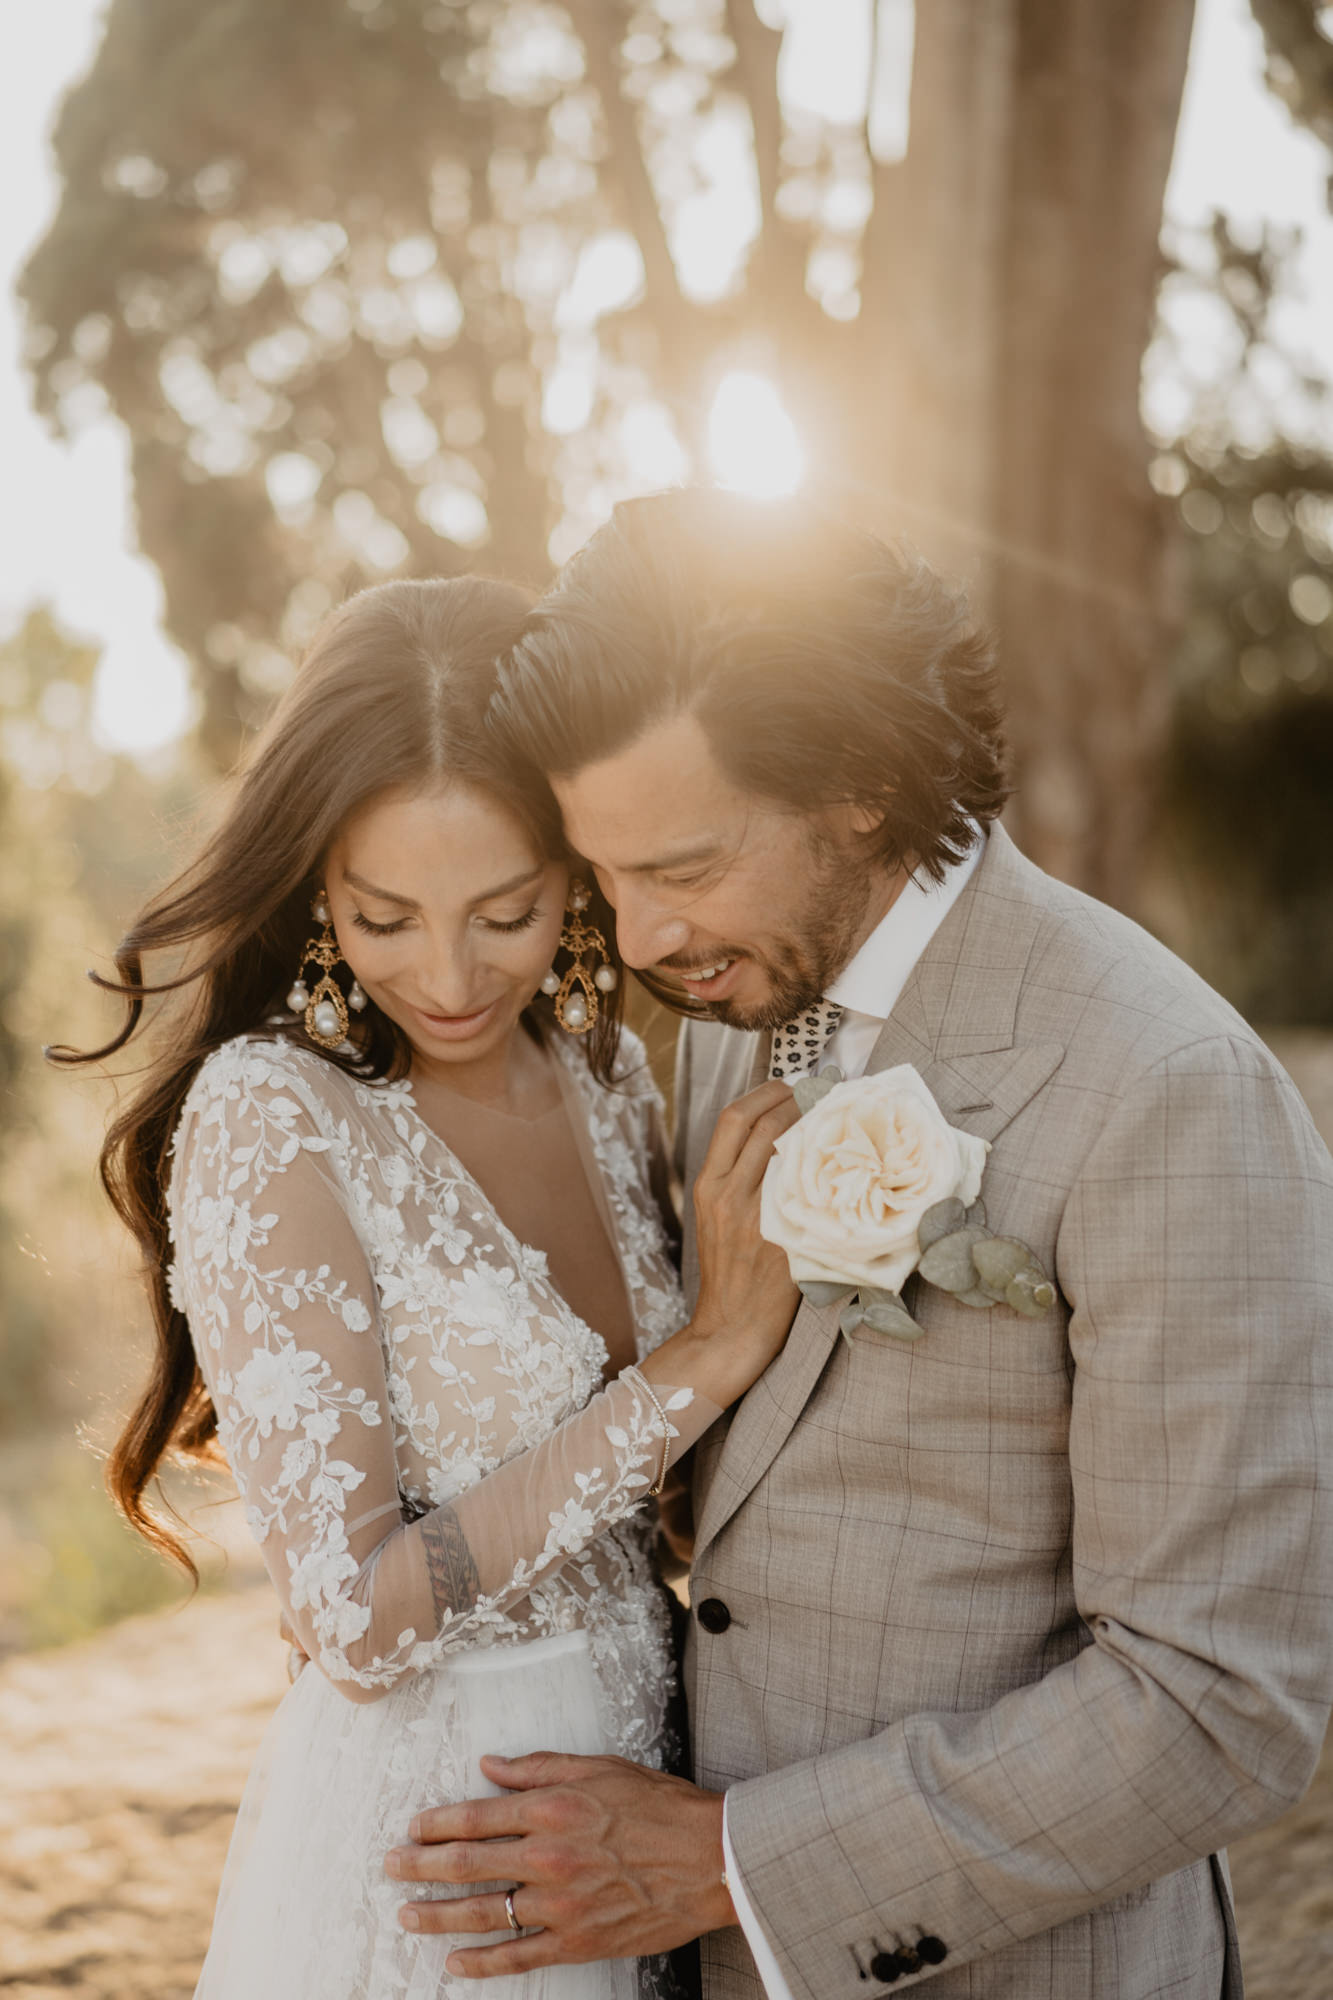 Italian-bride-in-long-sleeve-lace-wedding-gown-with-groom-david-bastianoni-italy